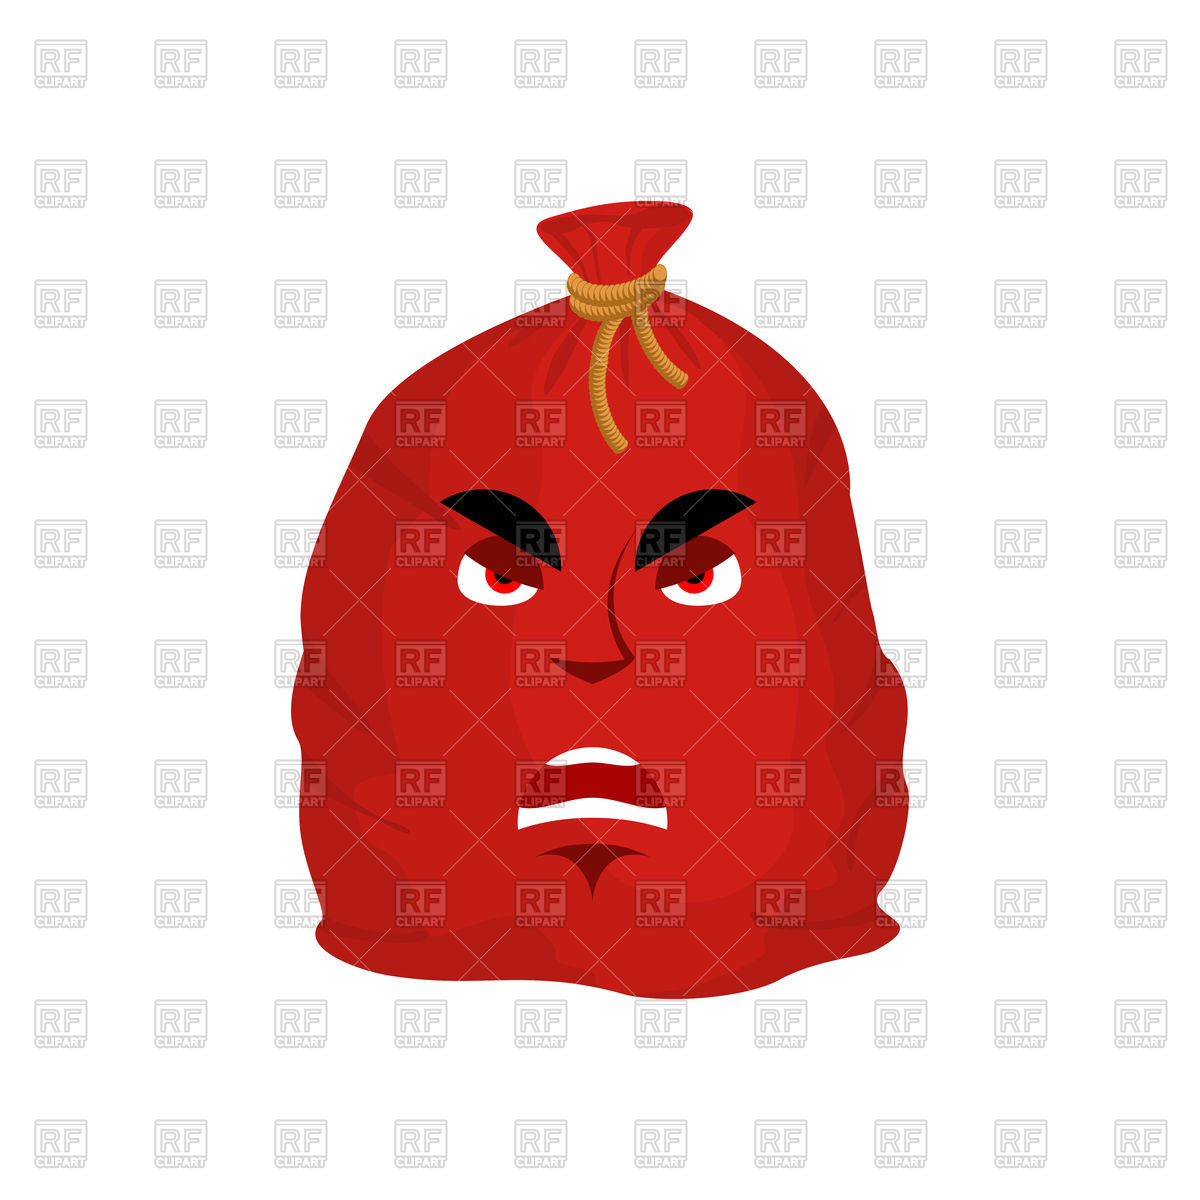 1200x1200 Santa Bag Angry Emotion. Red Christmas Sack With Gift Emoji